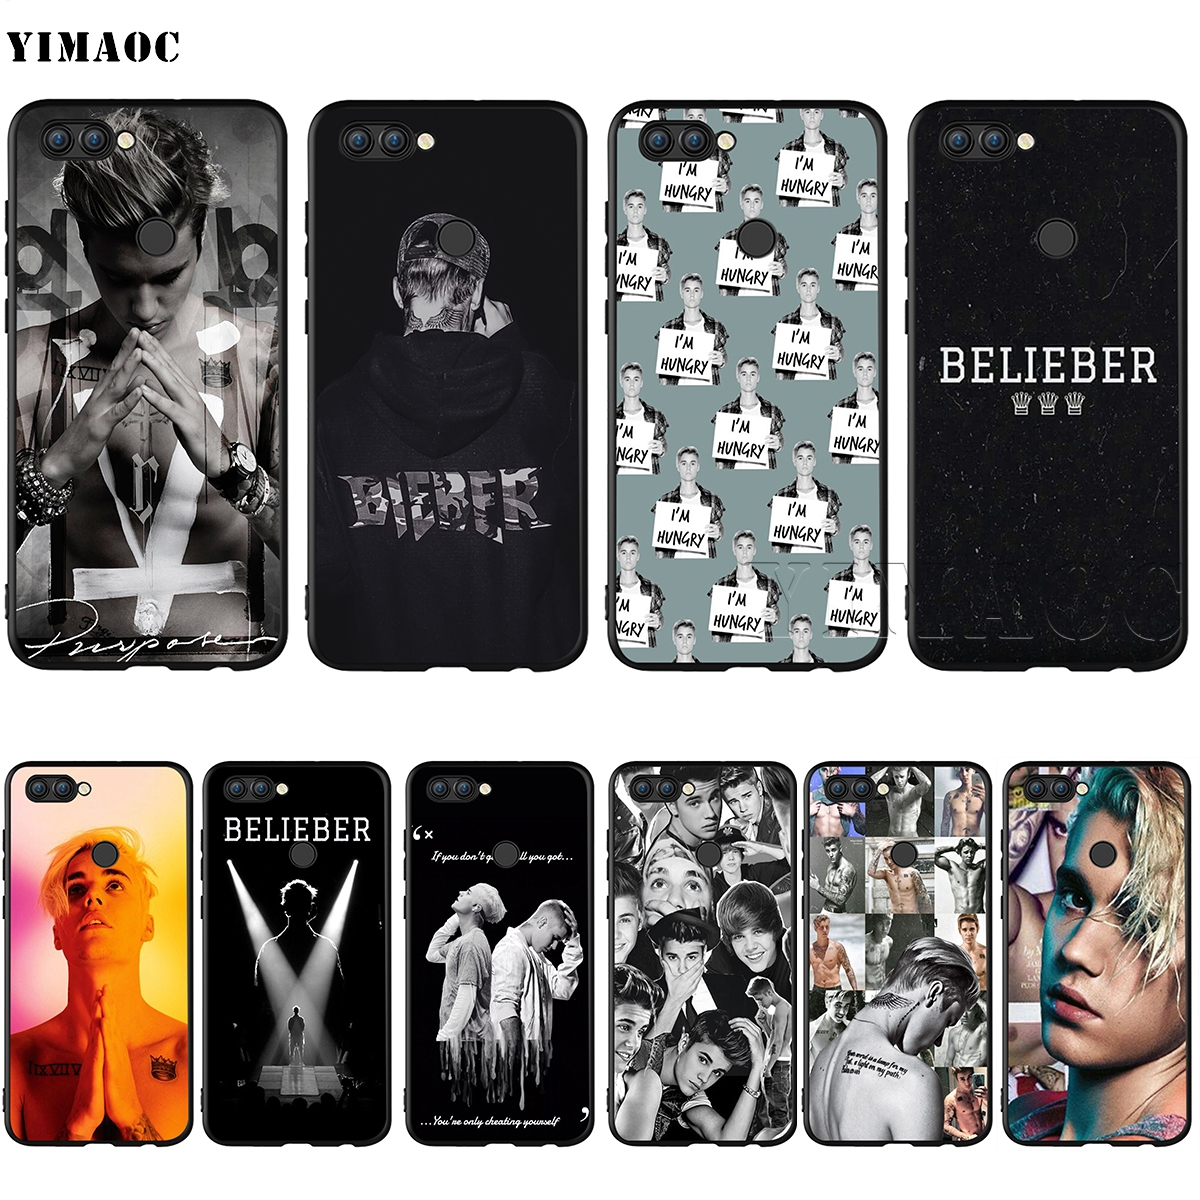 Yimaoc Justin Bieber Purpose Tour Soft Tpu Cover For Huawei Mate 20 Pro 20 Lite Nova3 3i Case For Honor 10 Lite 8x Cases Fitted Cases Cellphones & Telecommunications